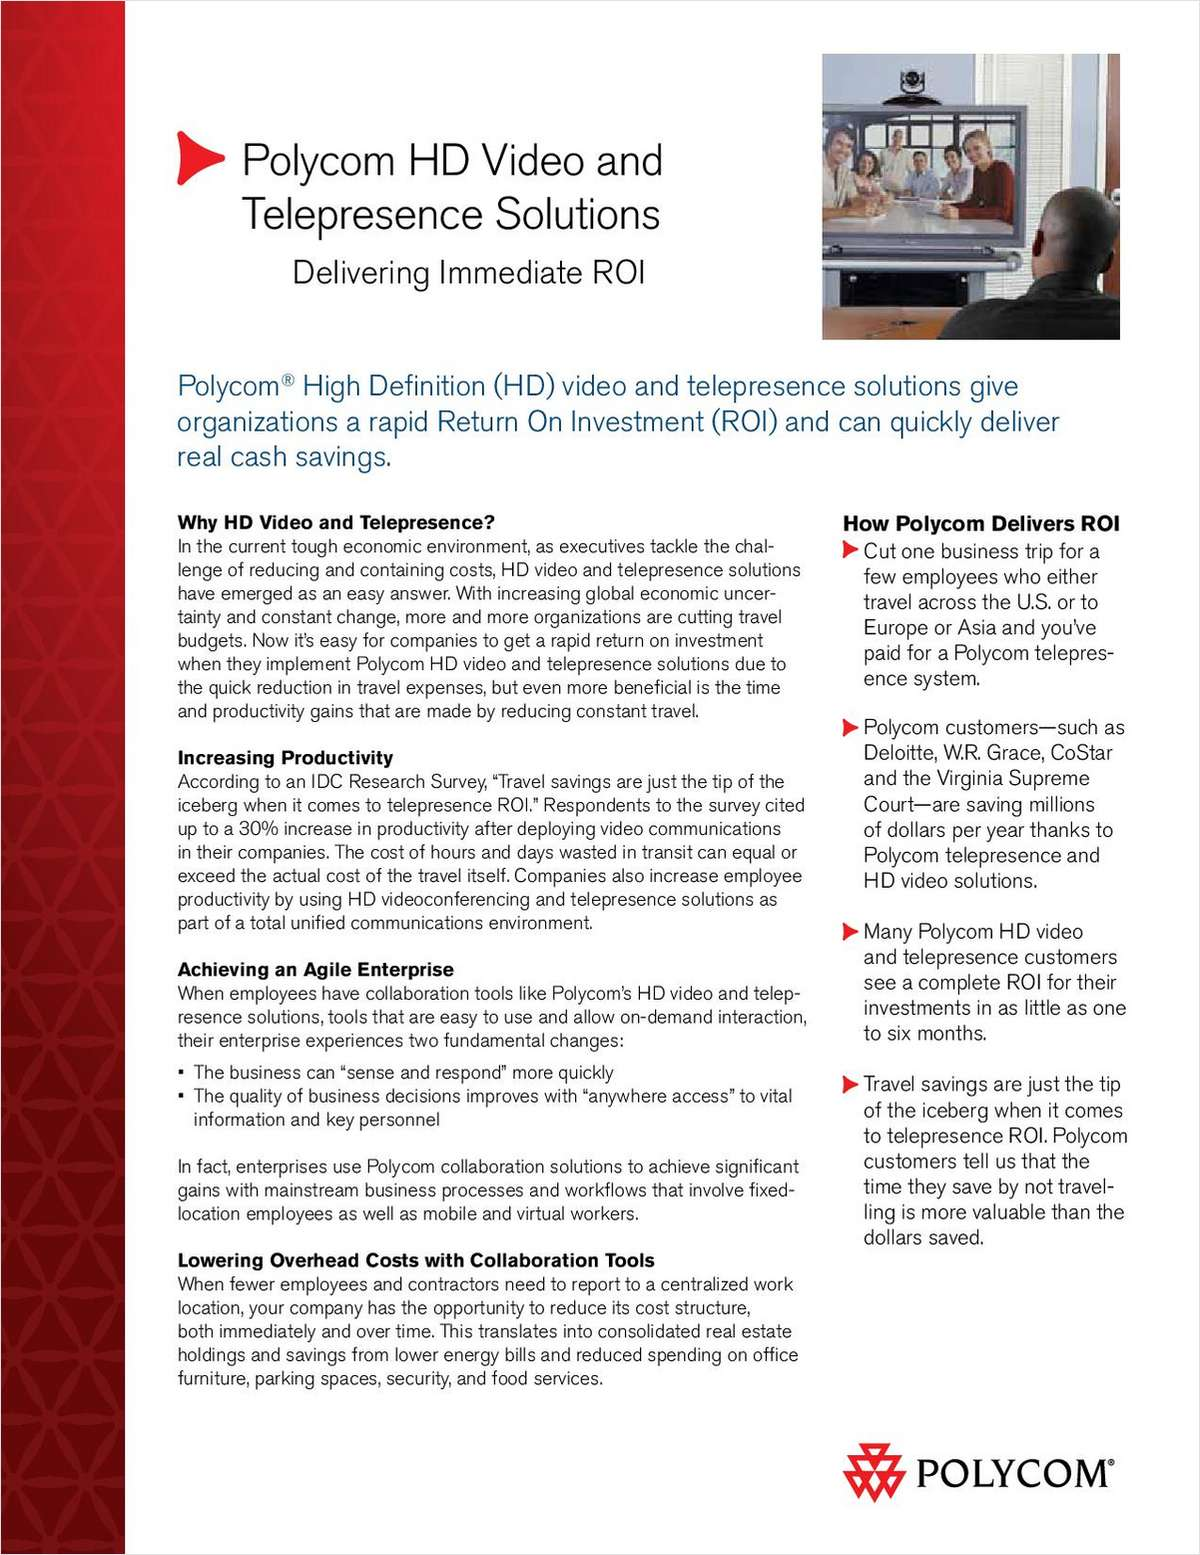 HD Video and Telepresence Solutions: Delivering Immediate ROI